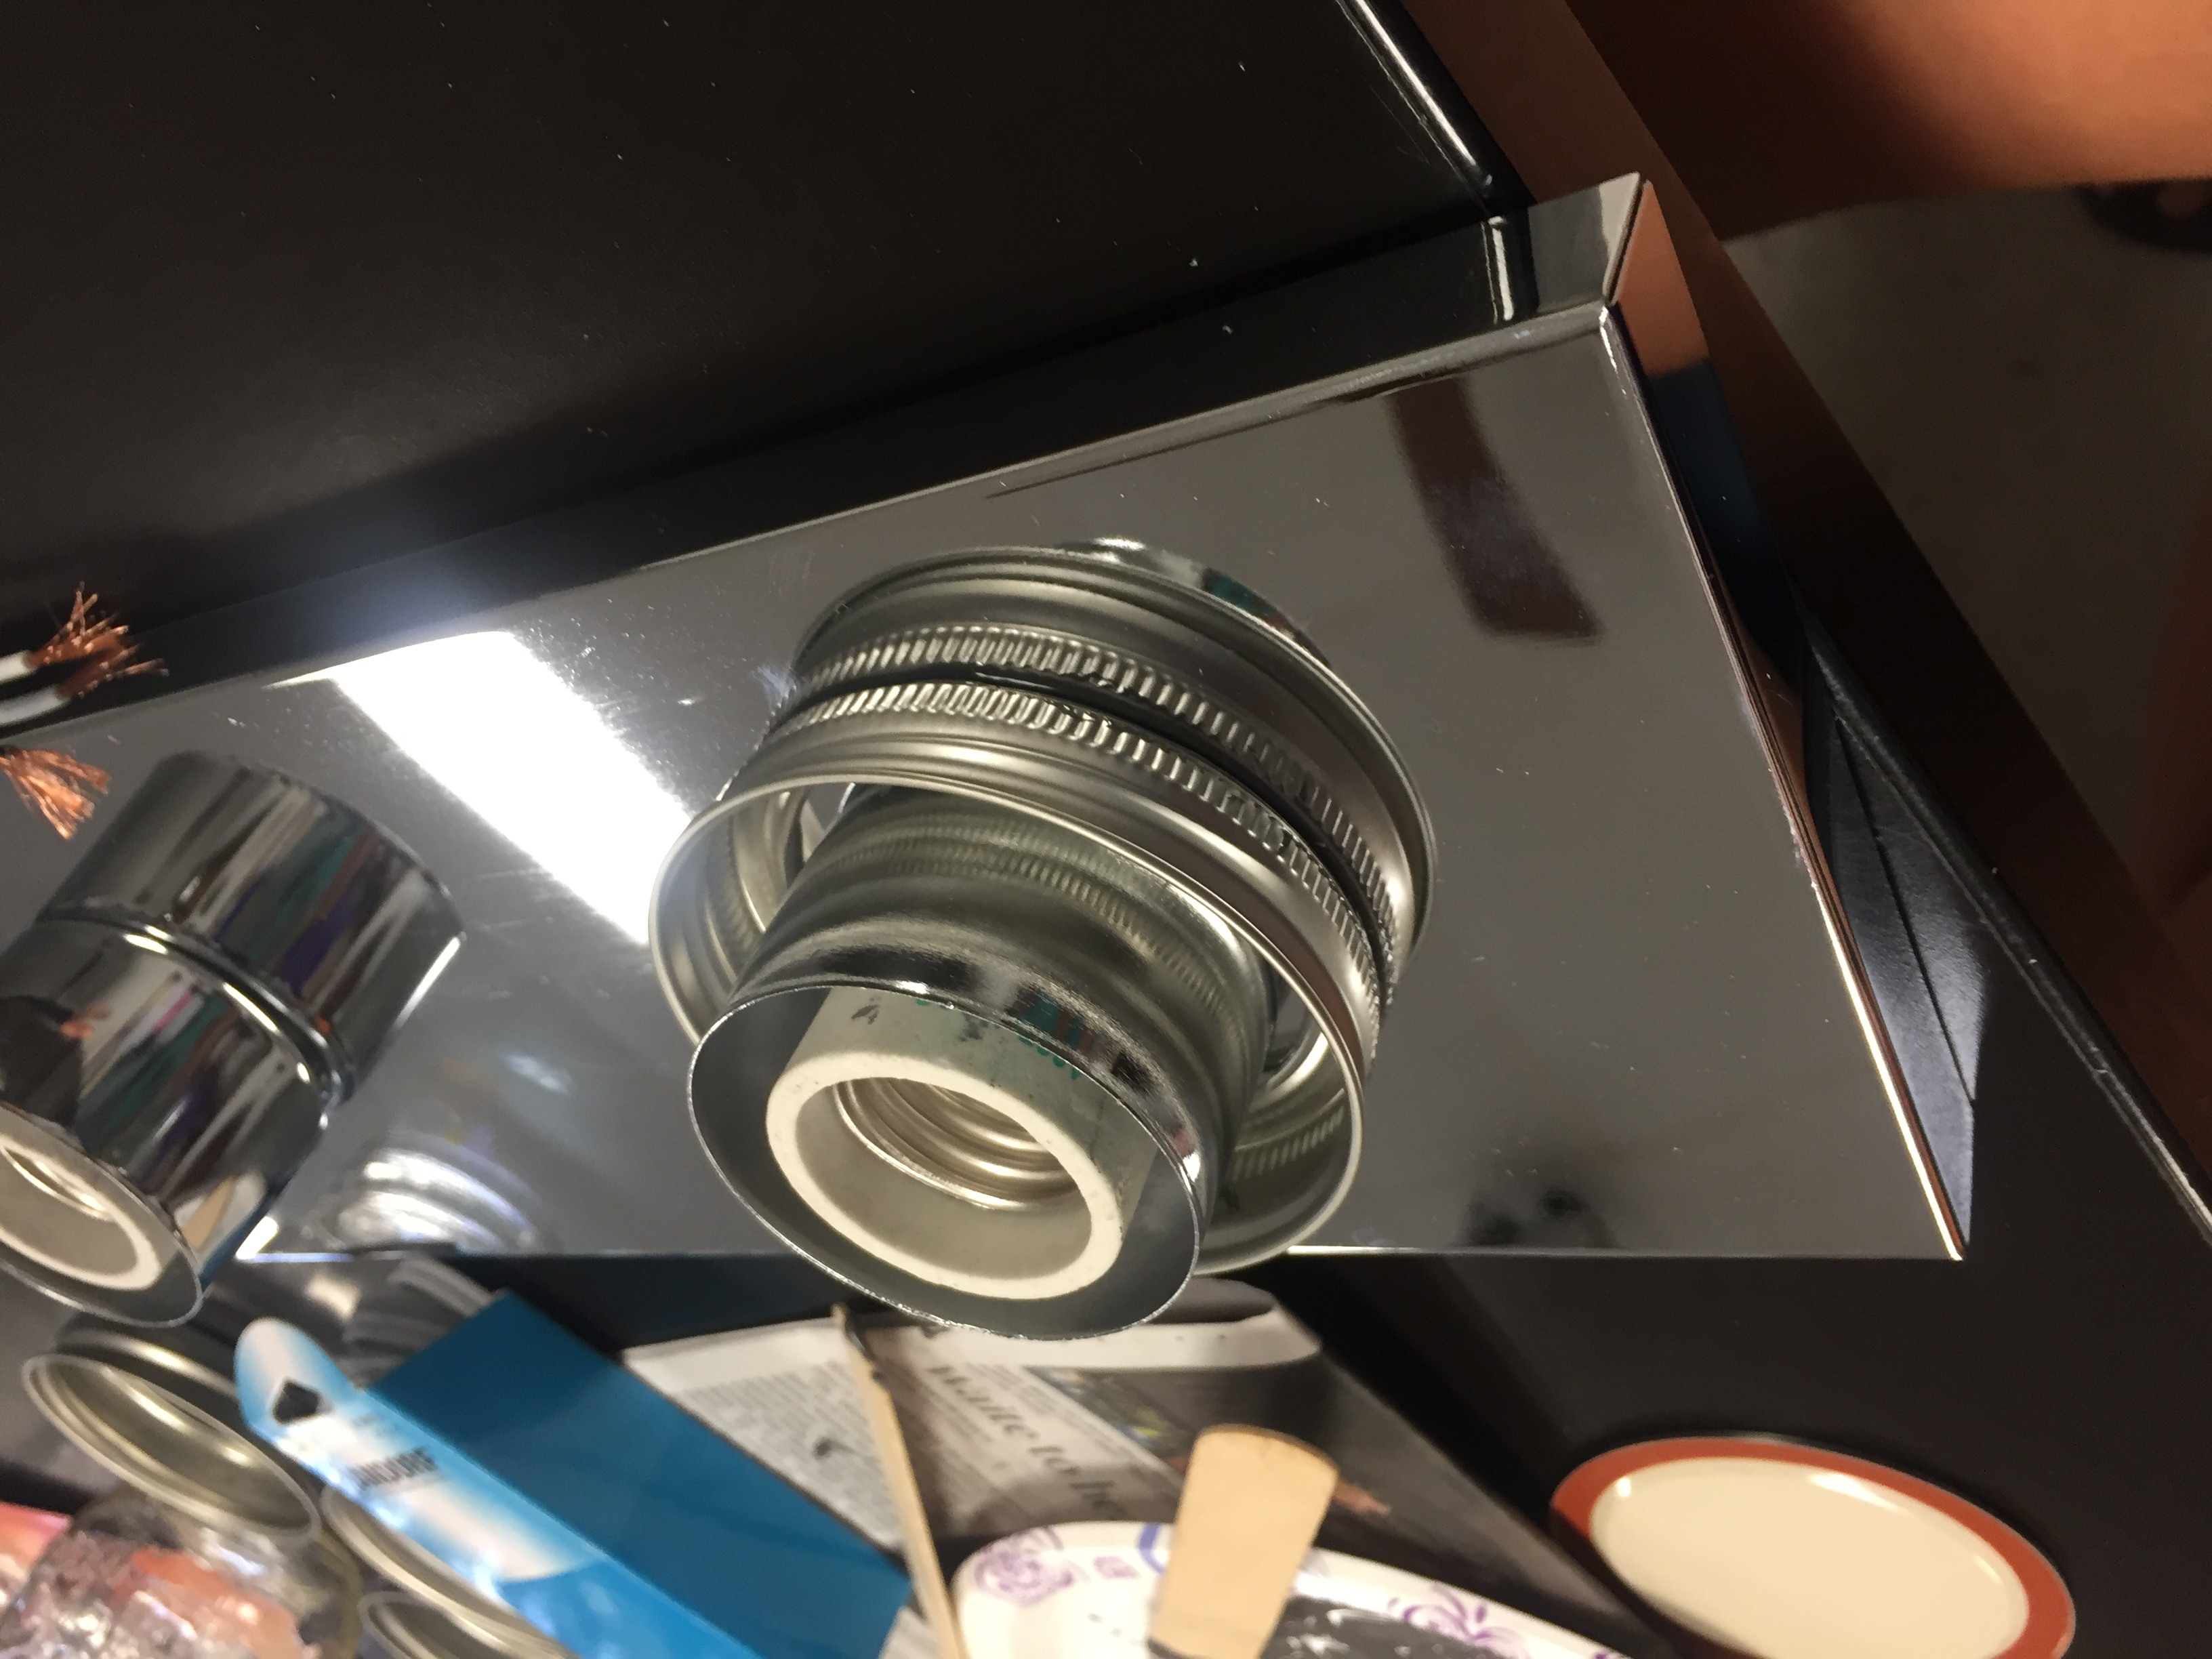 Picture of Attaching Jar Lids to Light Fixture